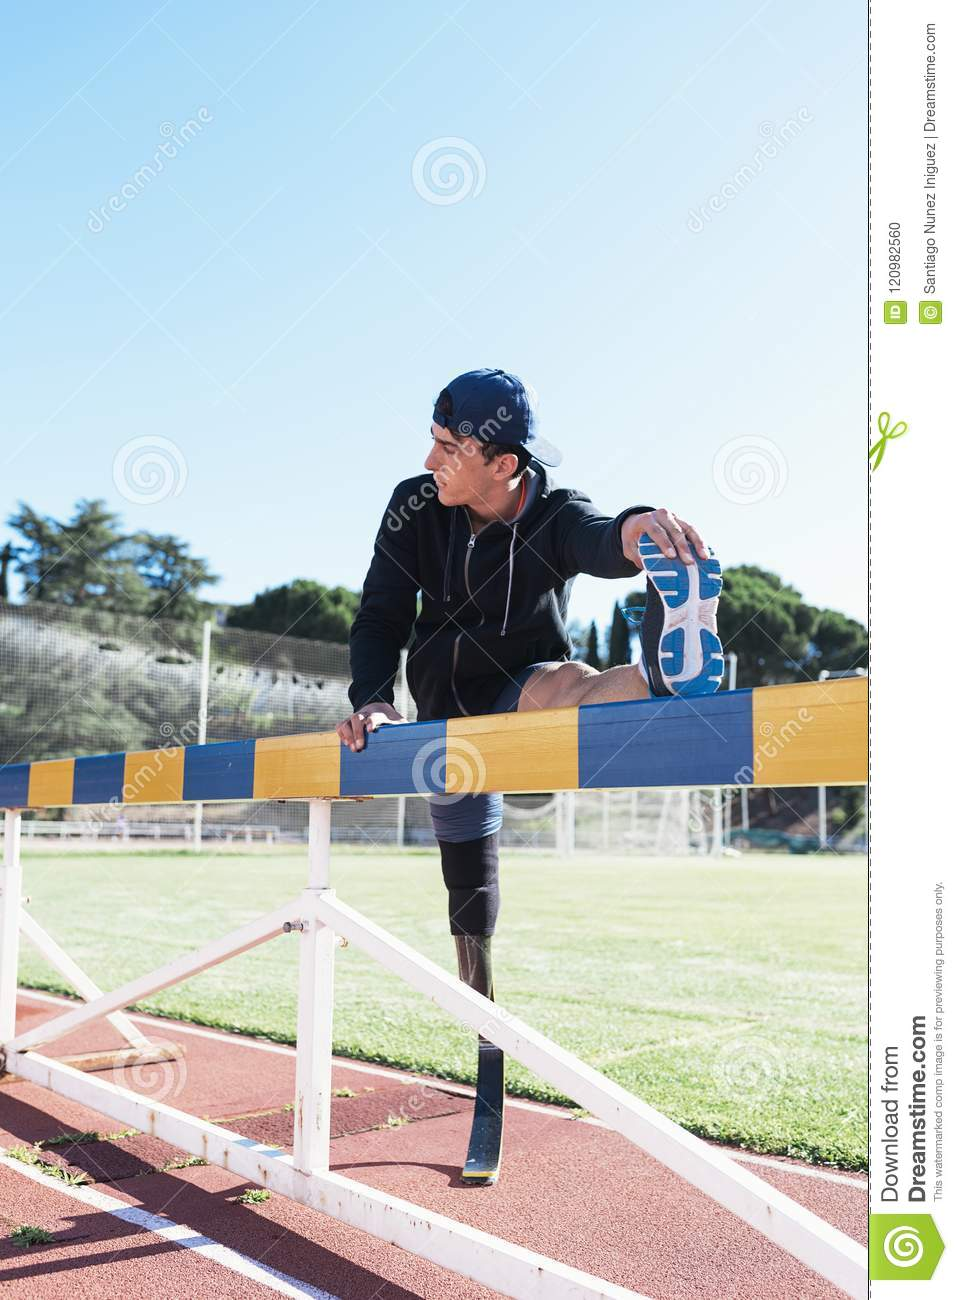 Disabled man athlete stretching with leg prosthesis. Paralympic Sport Concept.